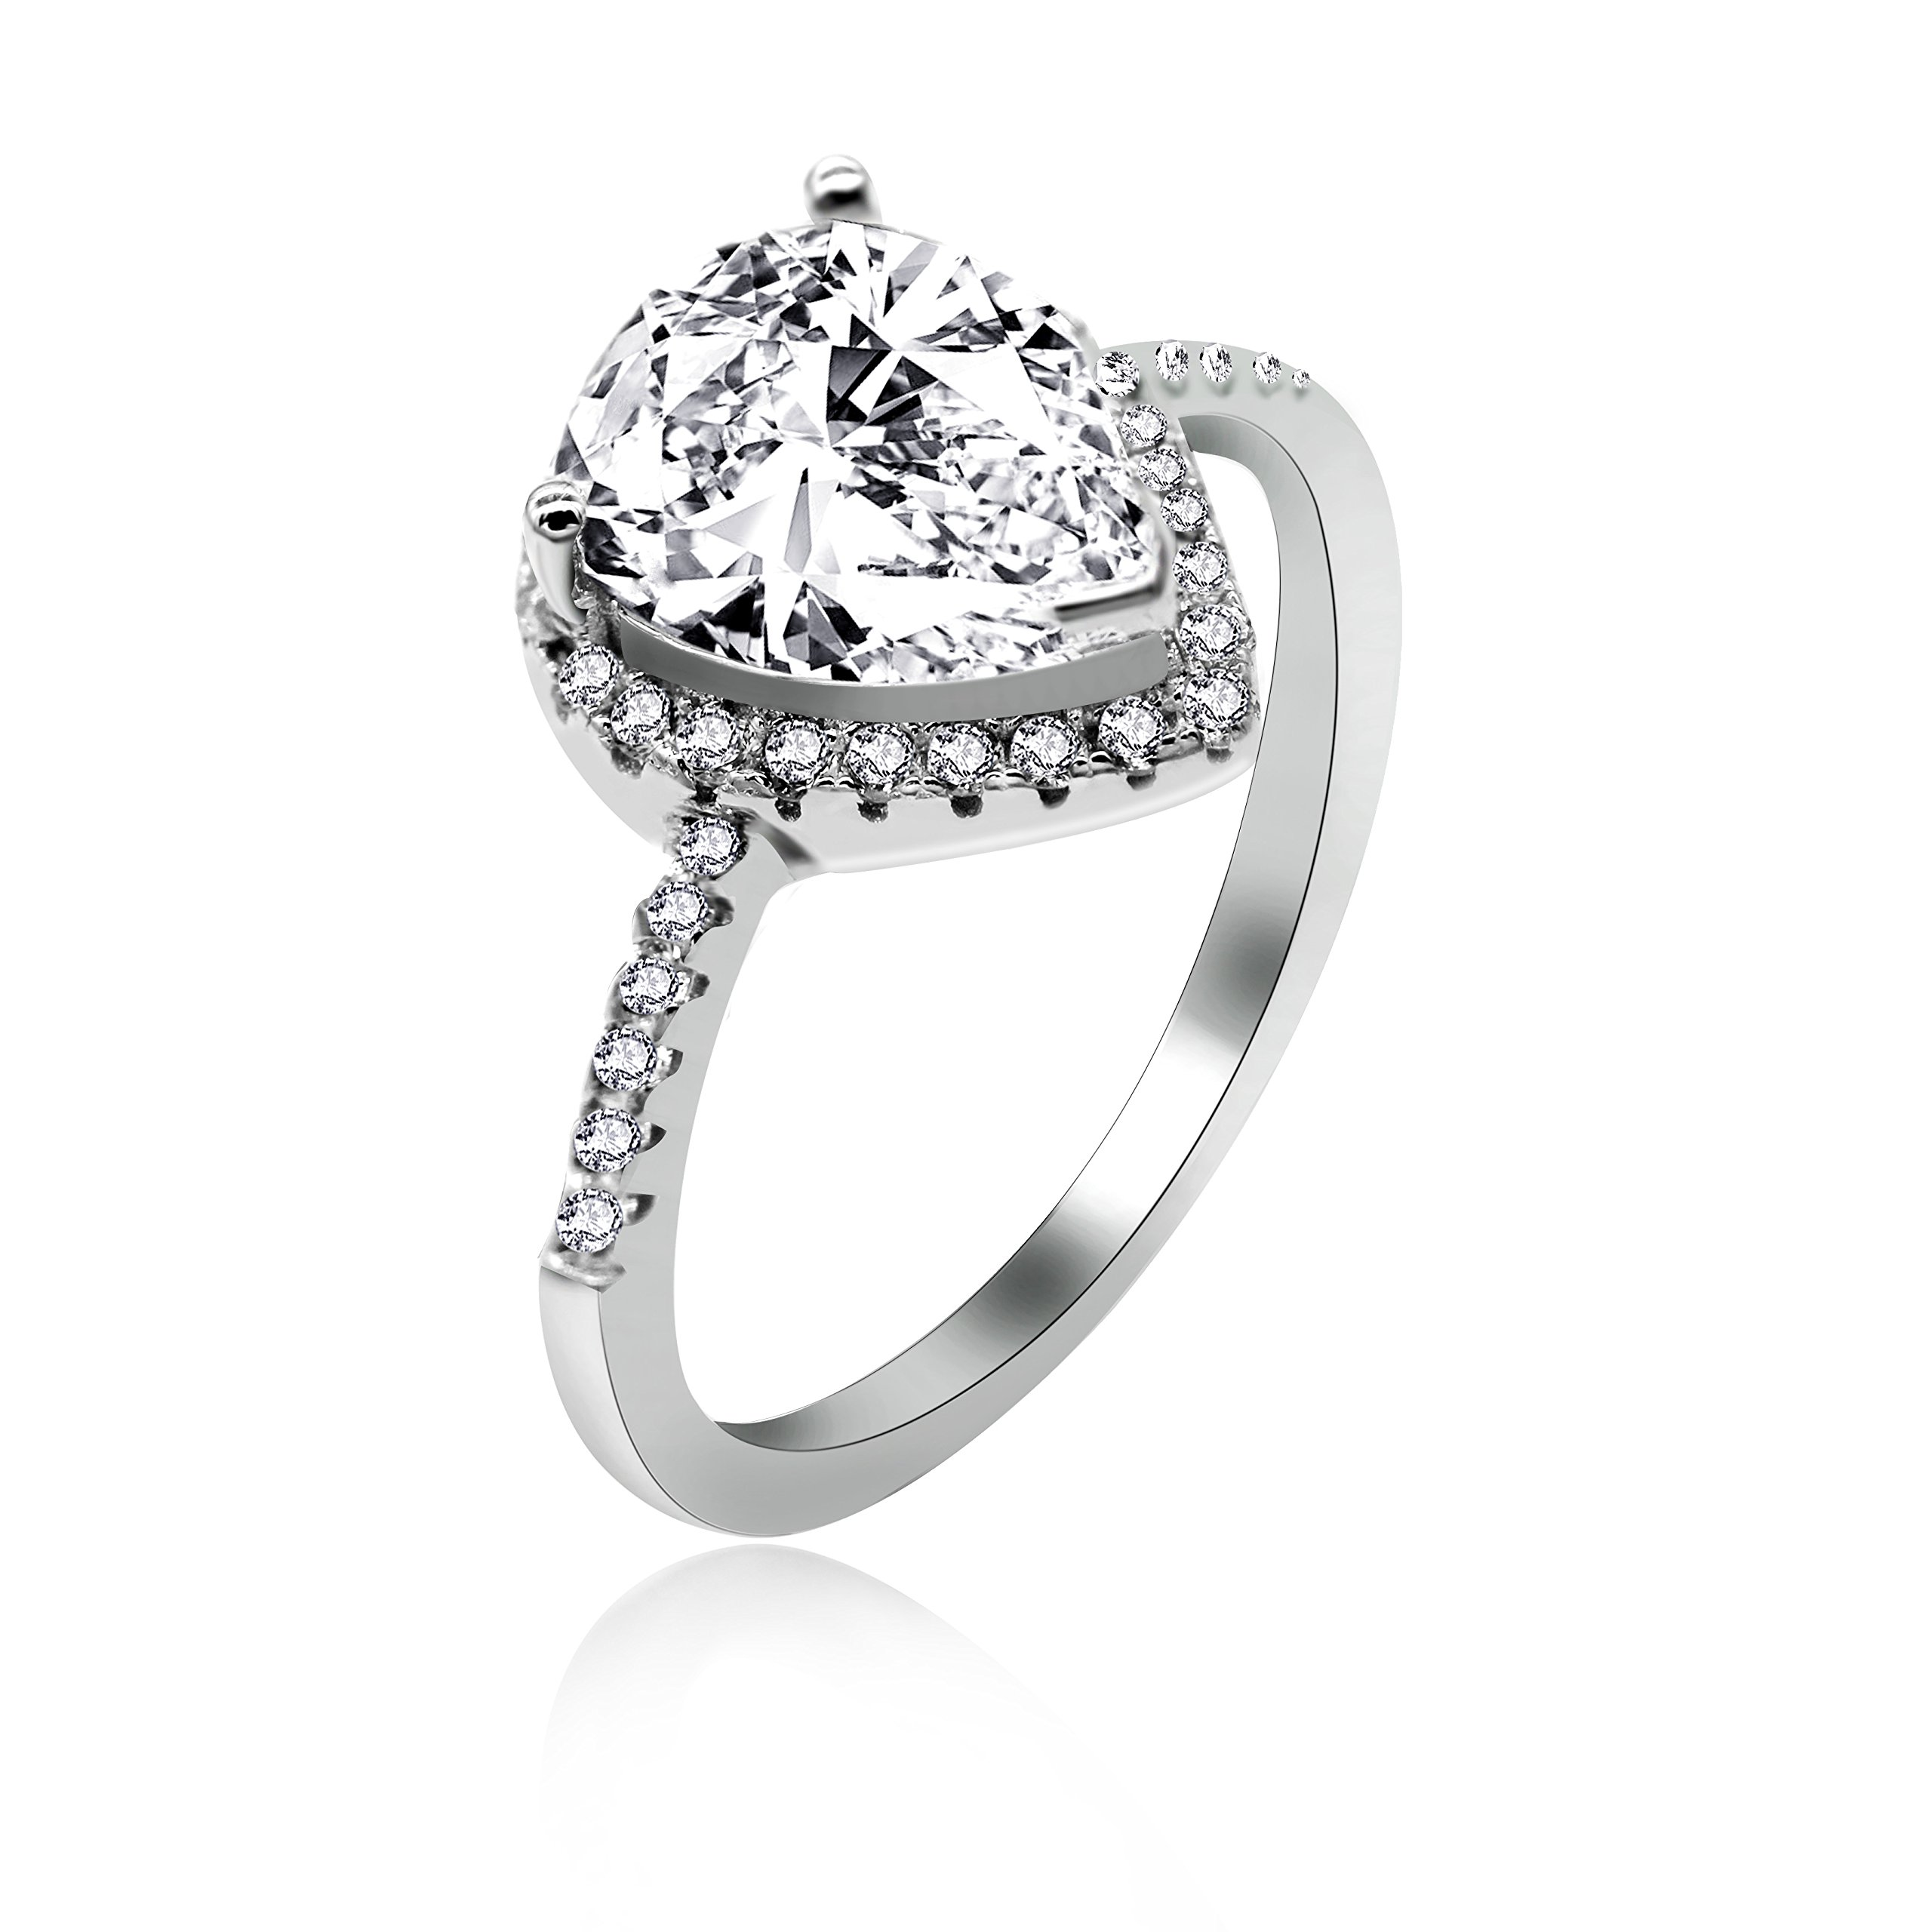 Uloveido 925 Sterling Silver Heart Shaped White Cubic Zirconia CZ Halo Promise Engagement Ring for Her (White, Size 8) JZ116